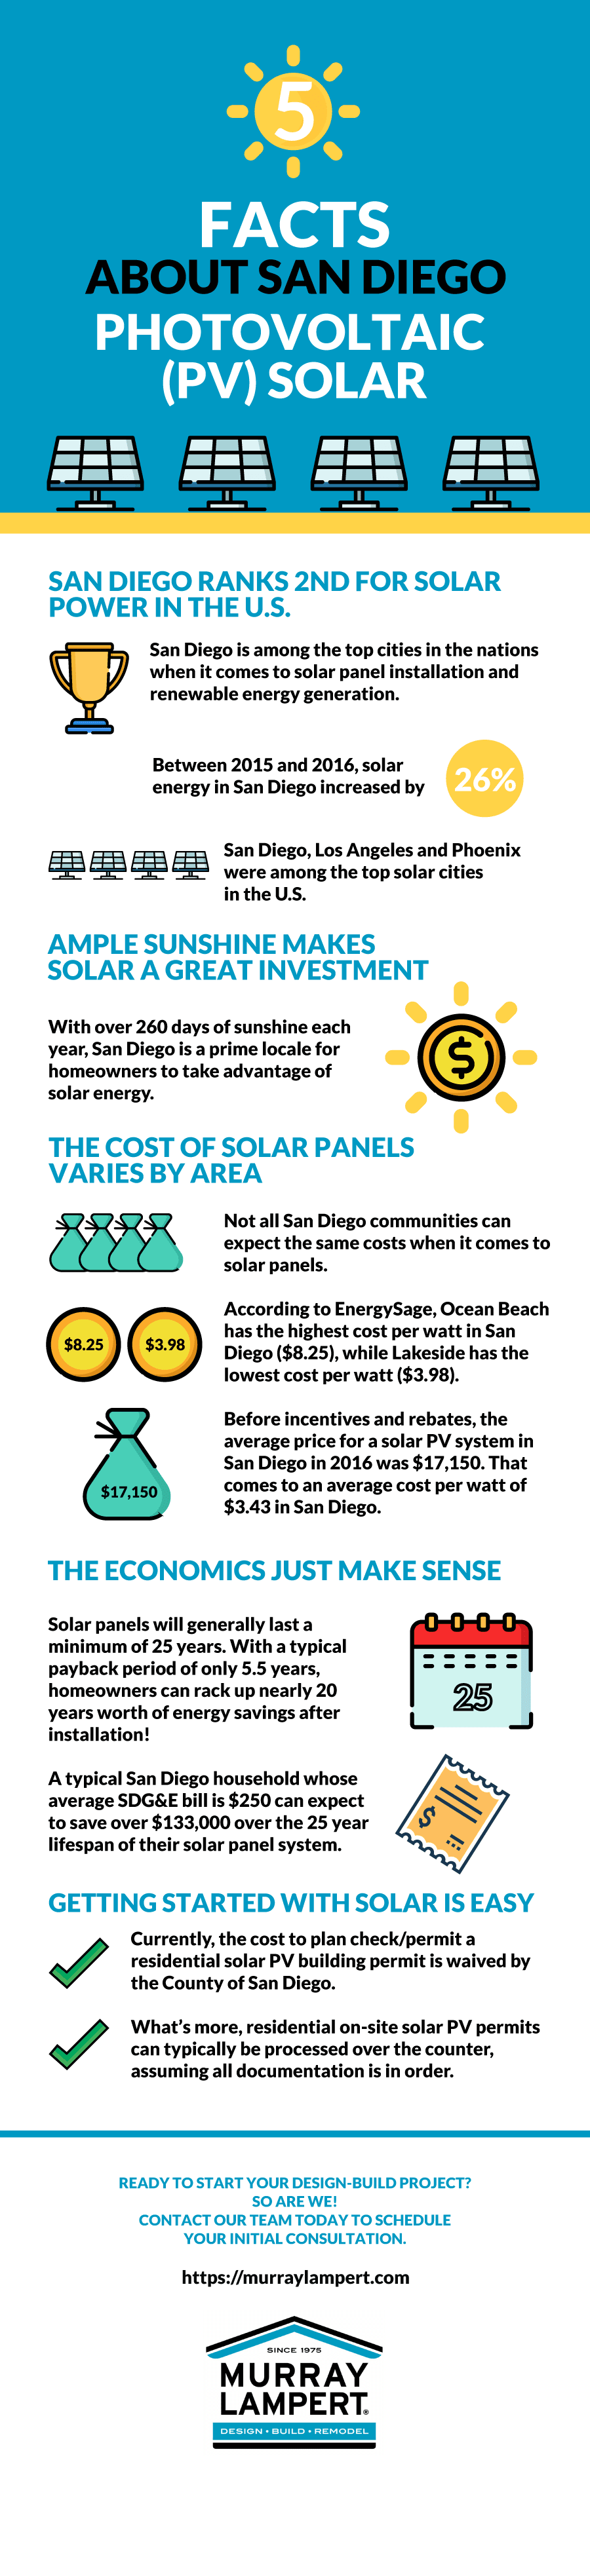 5 Facts About San Diego Photovoltaic (PV Solar)